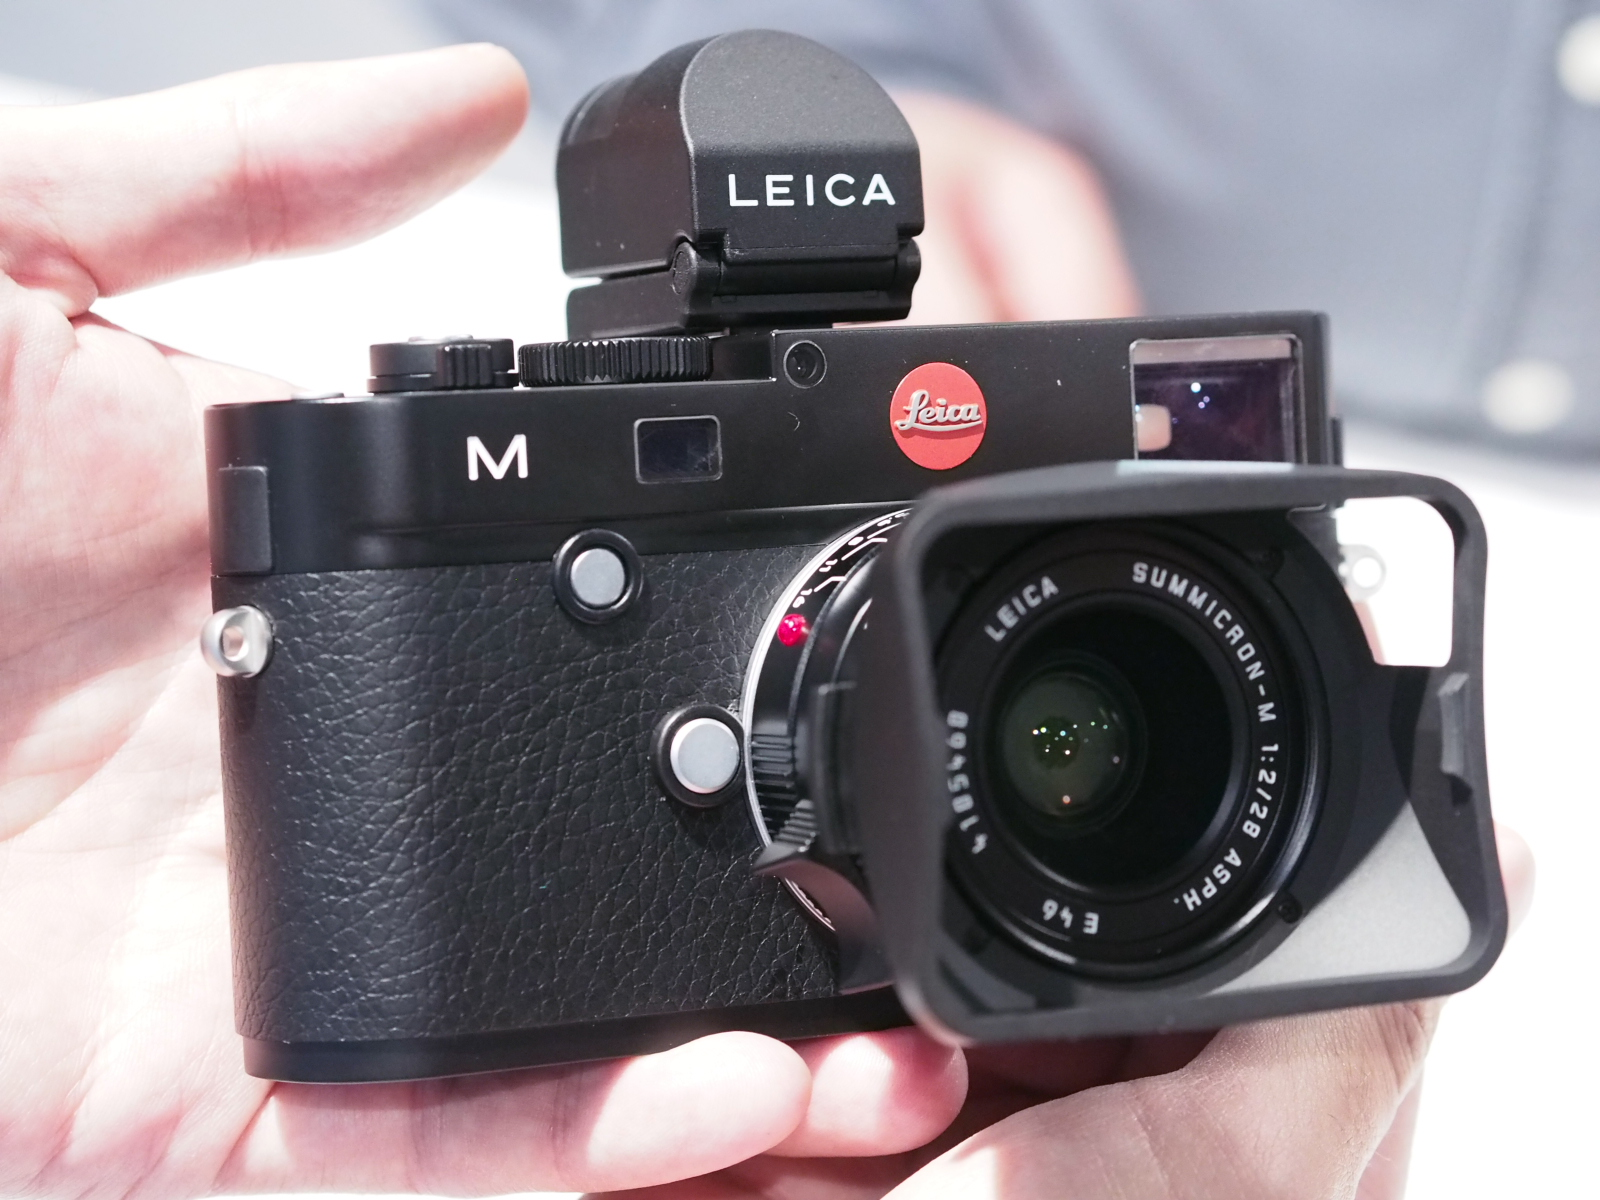 Photokina 2012: Leica Stand Report: Digital Photography Review